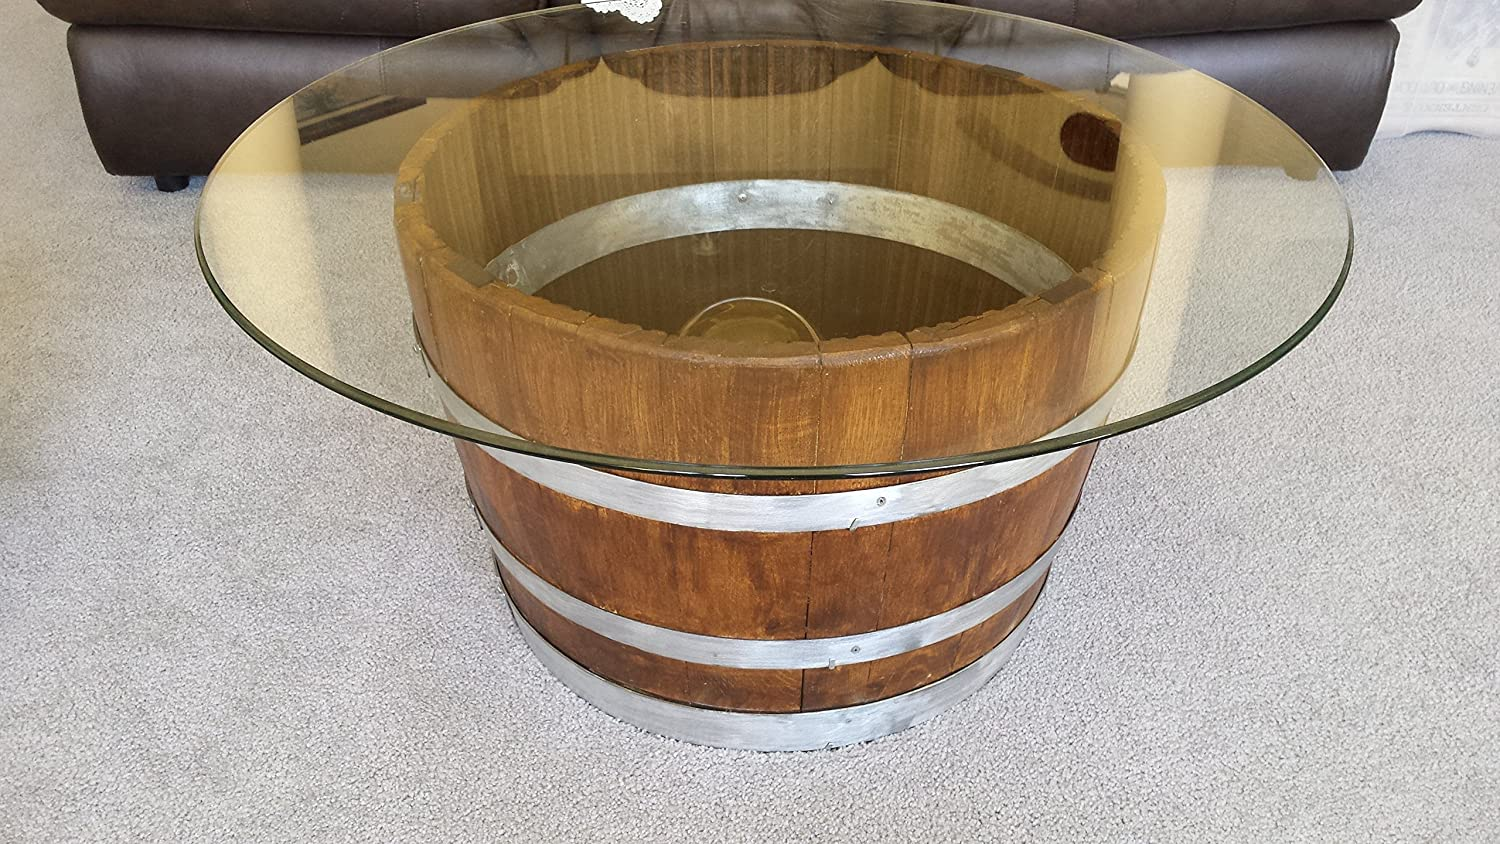 Decorative Half Wine Barrel Table With Glasstop - FREE SHIPPING